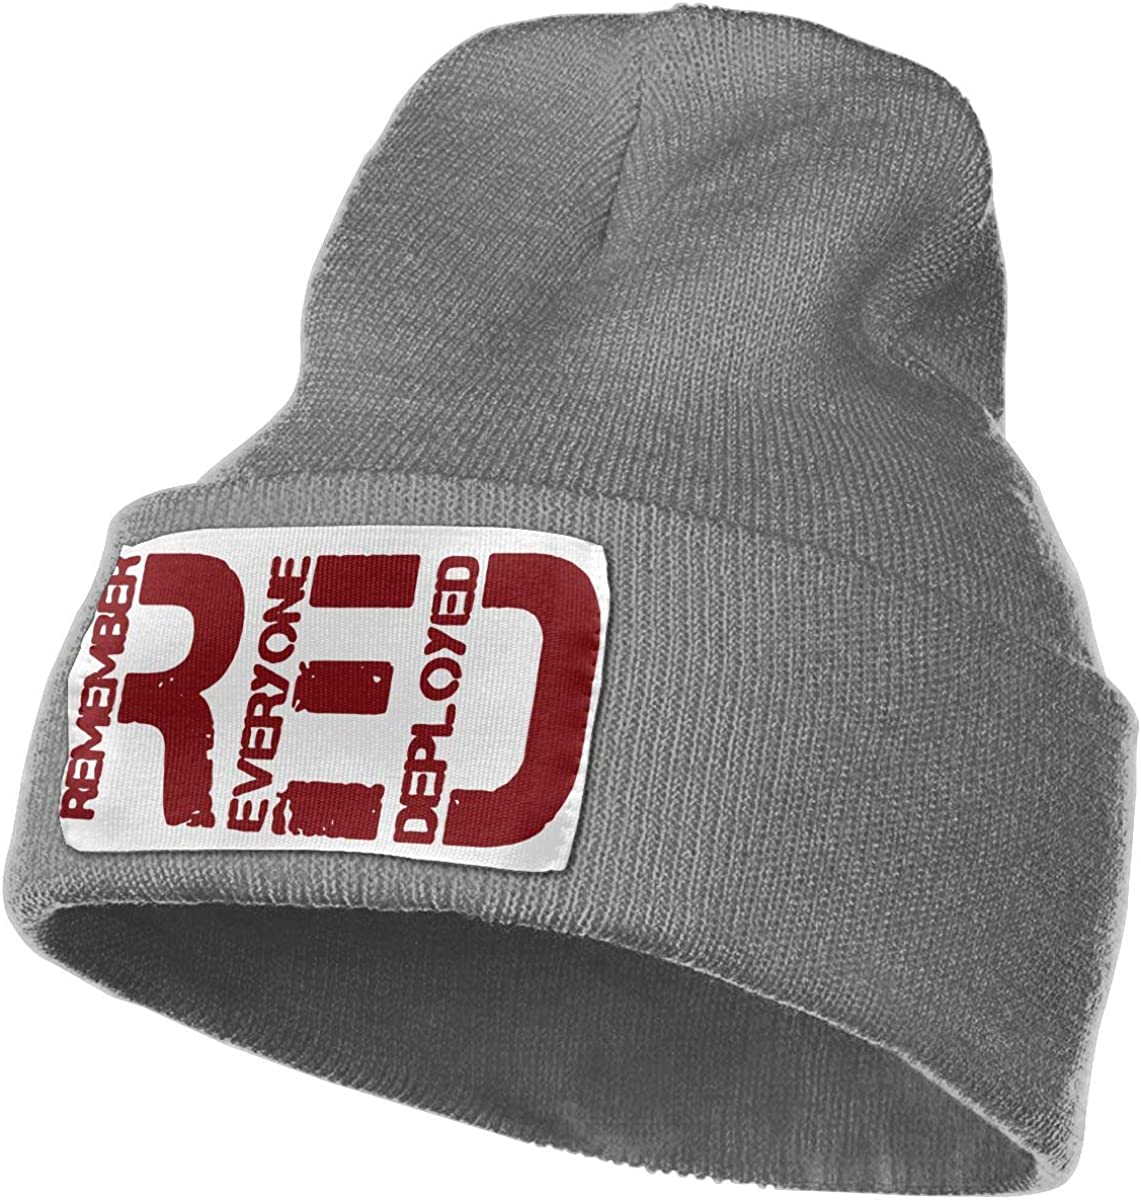 RED Remember Everyone Deployed Men /& Women Skull Caps Winter Warm Stretchy Knitting Beanie Hats